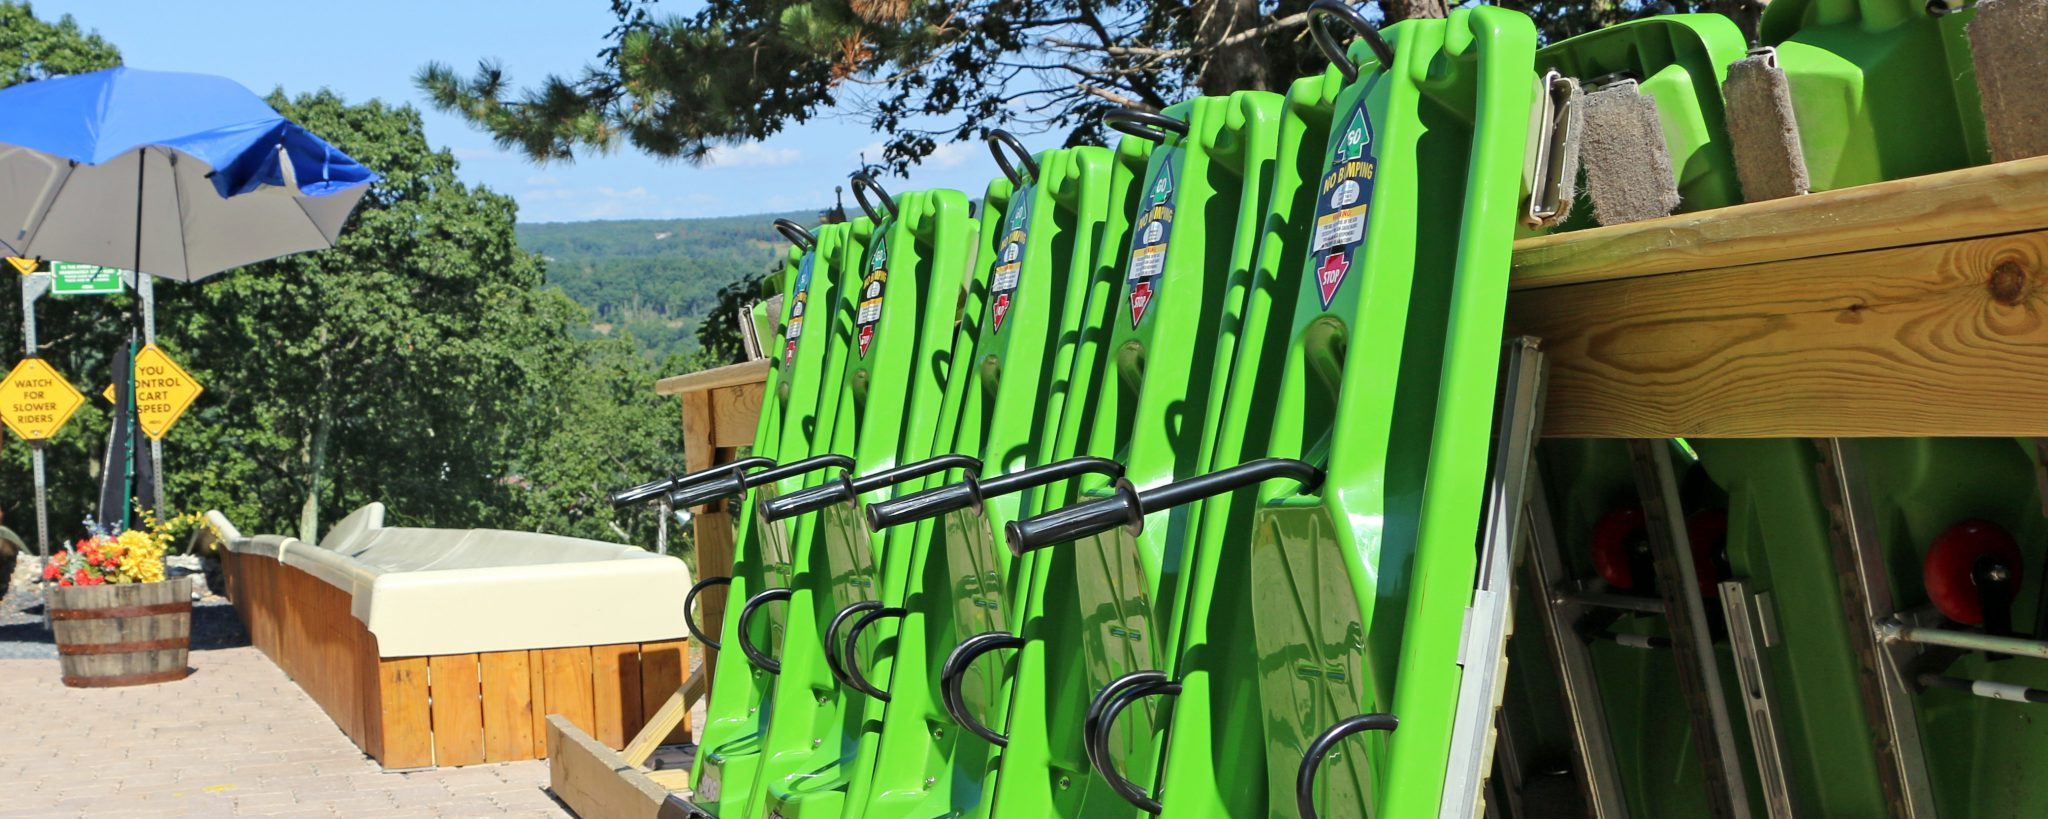 Bright green alpine slide carts at the top of the mountain